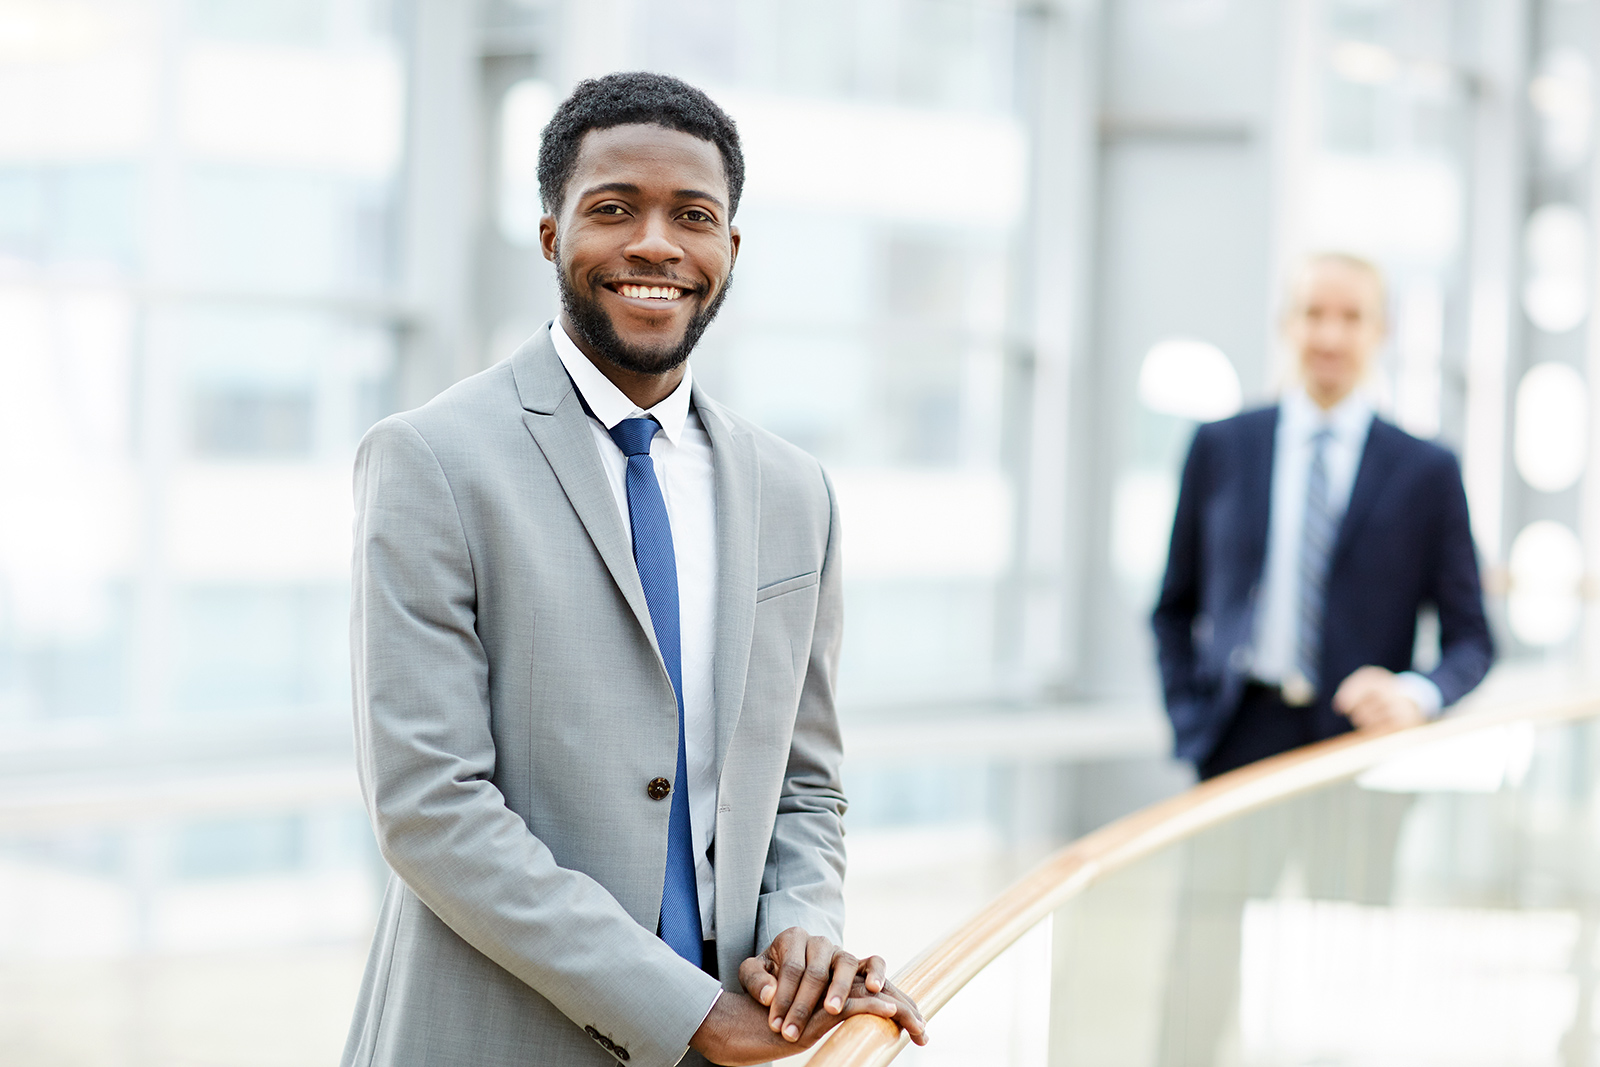 smiling-black-businessman-LUTNGCF.jpg